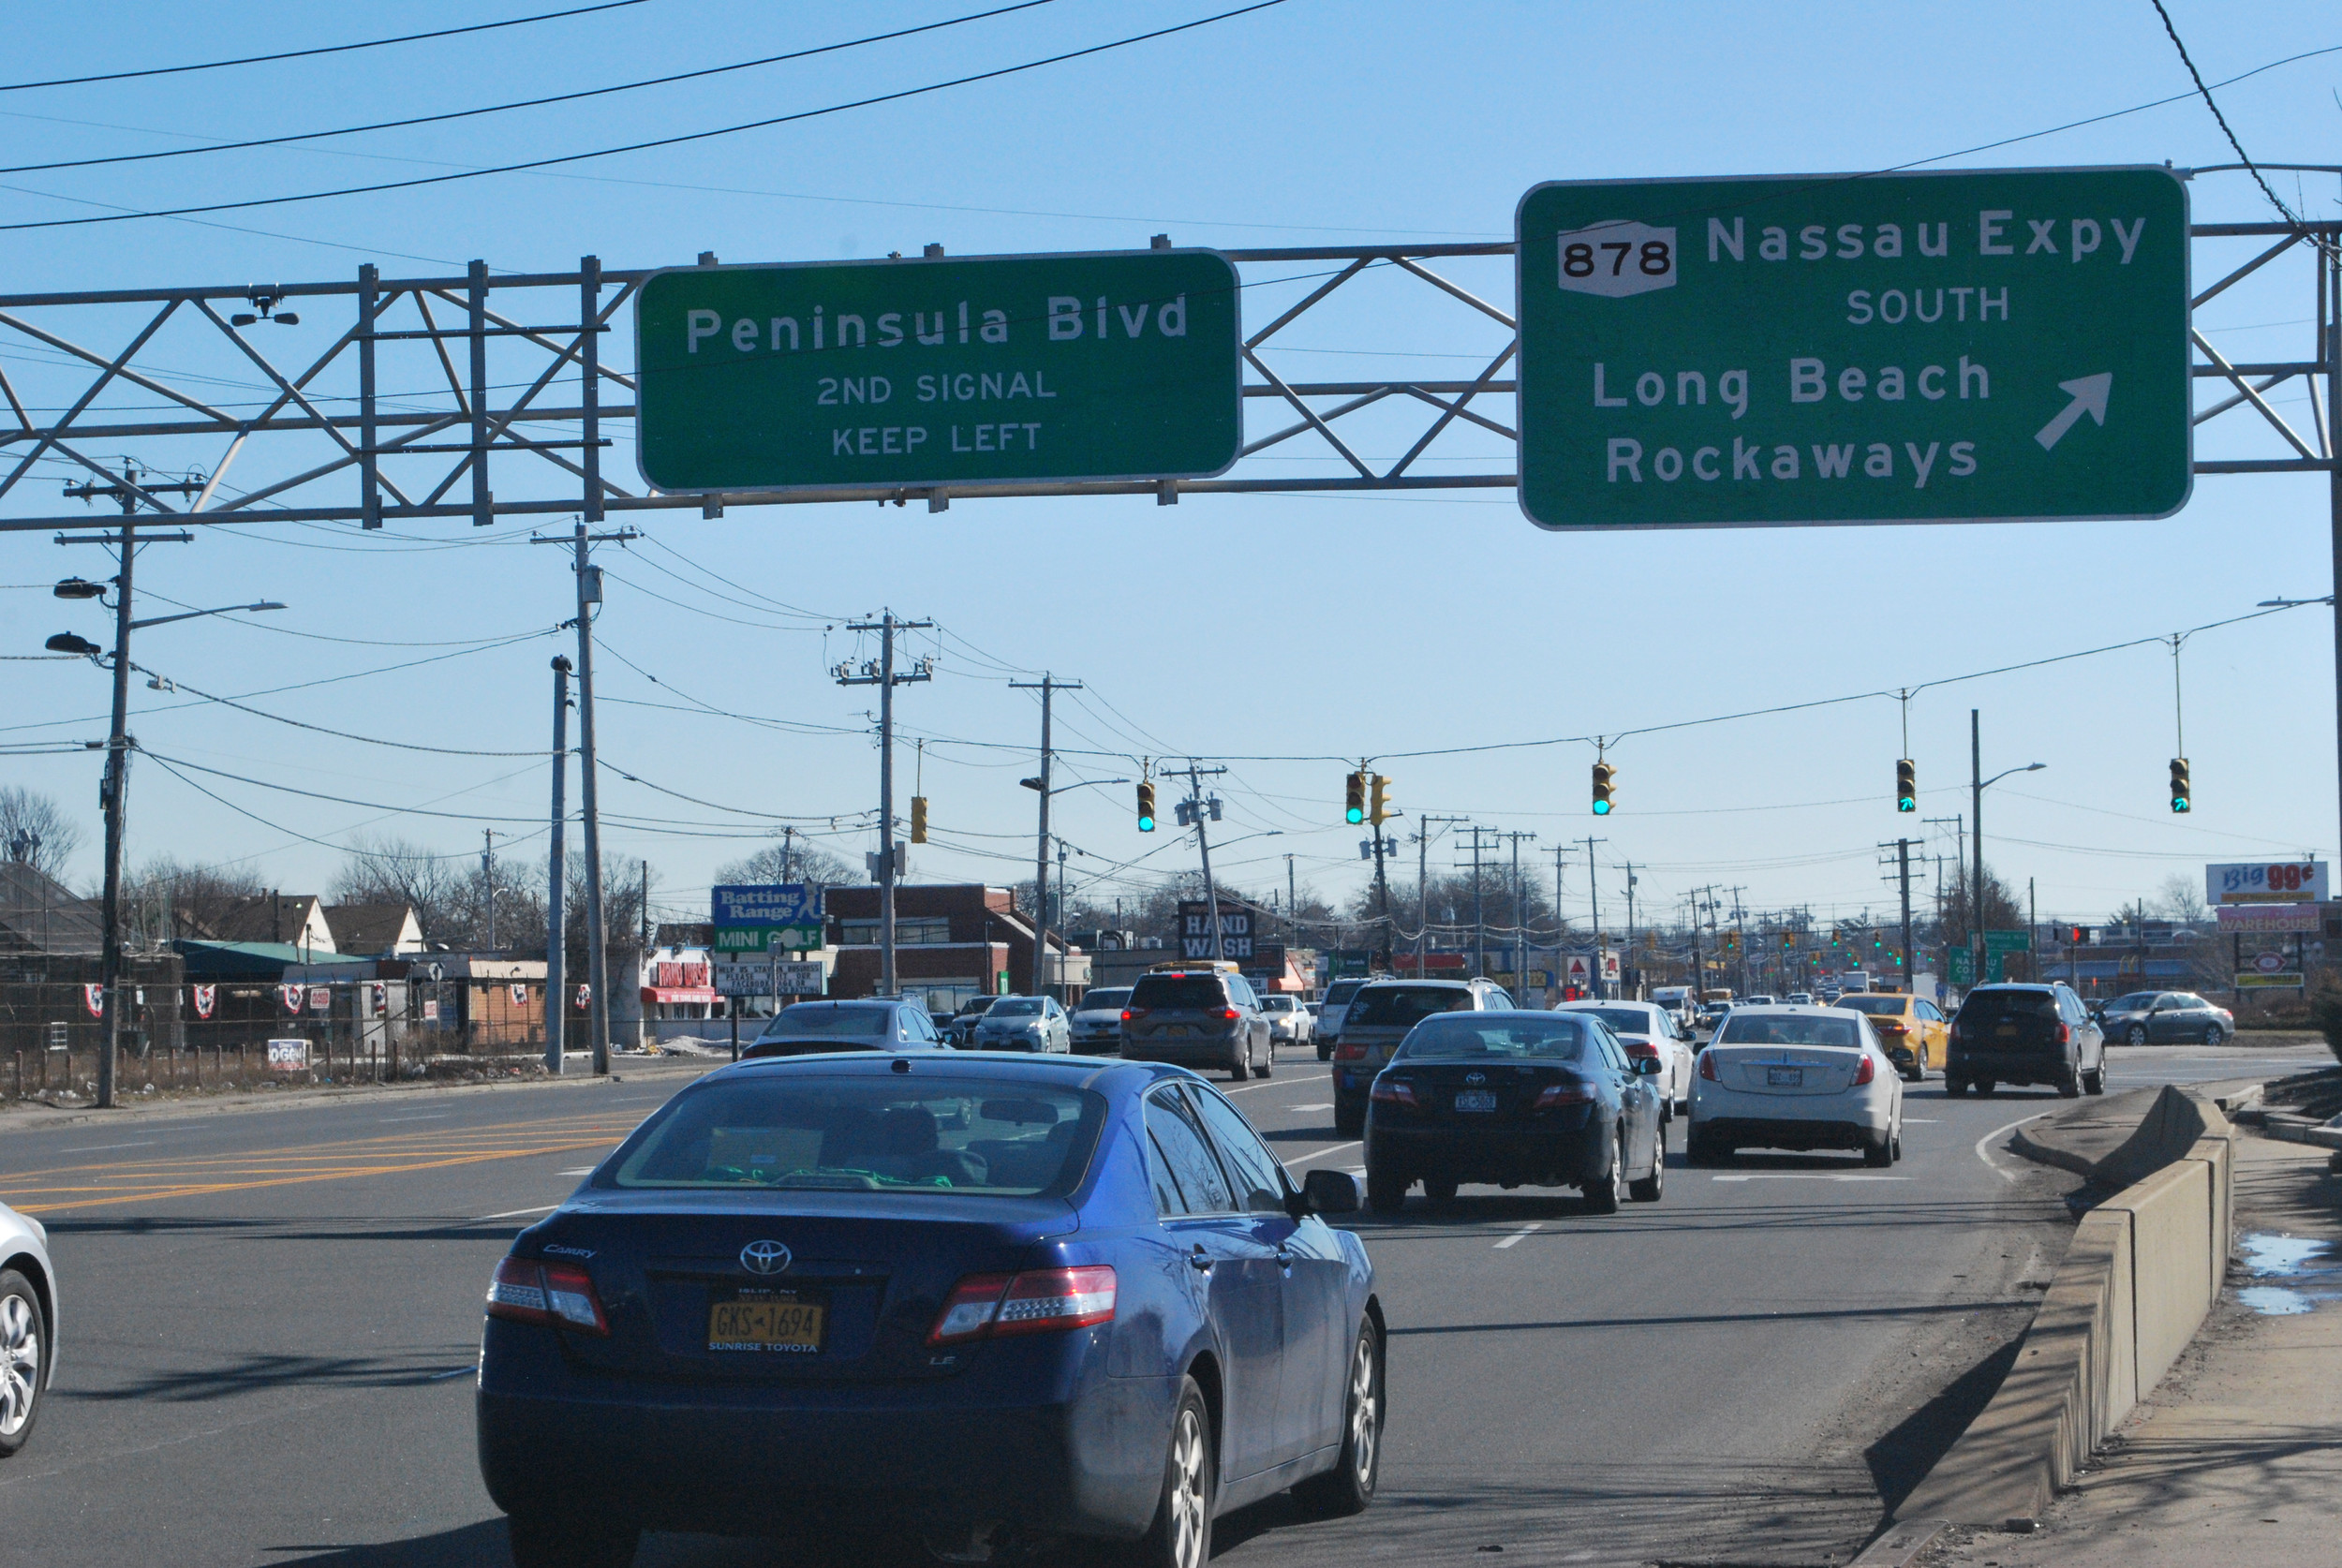 About 40 000 Vehicles Use Route 878 Daily Between The Five Towns And New York City